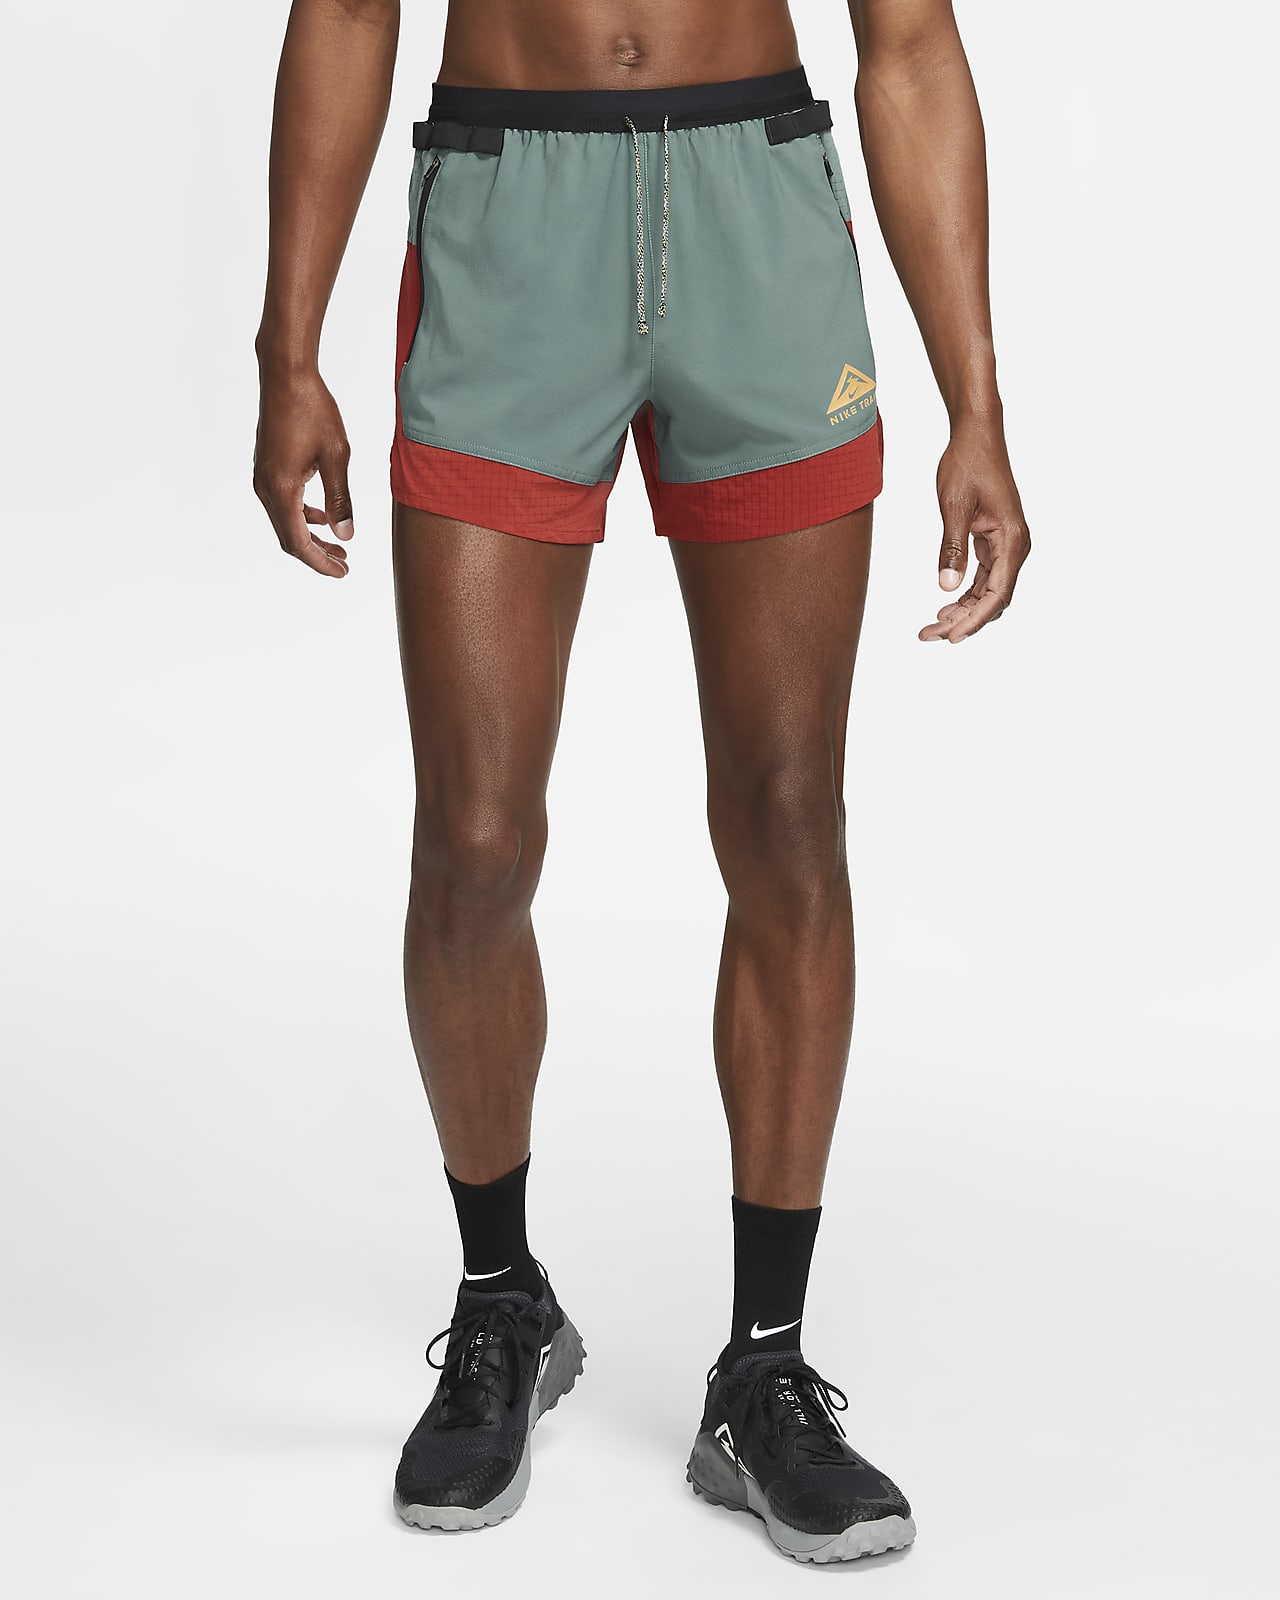 Nike Dri-FIT Flex Stride Men's Trail Shorts